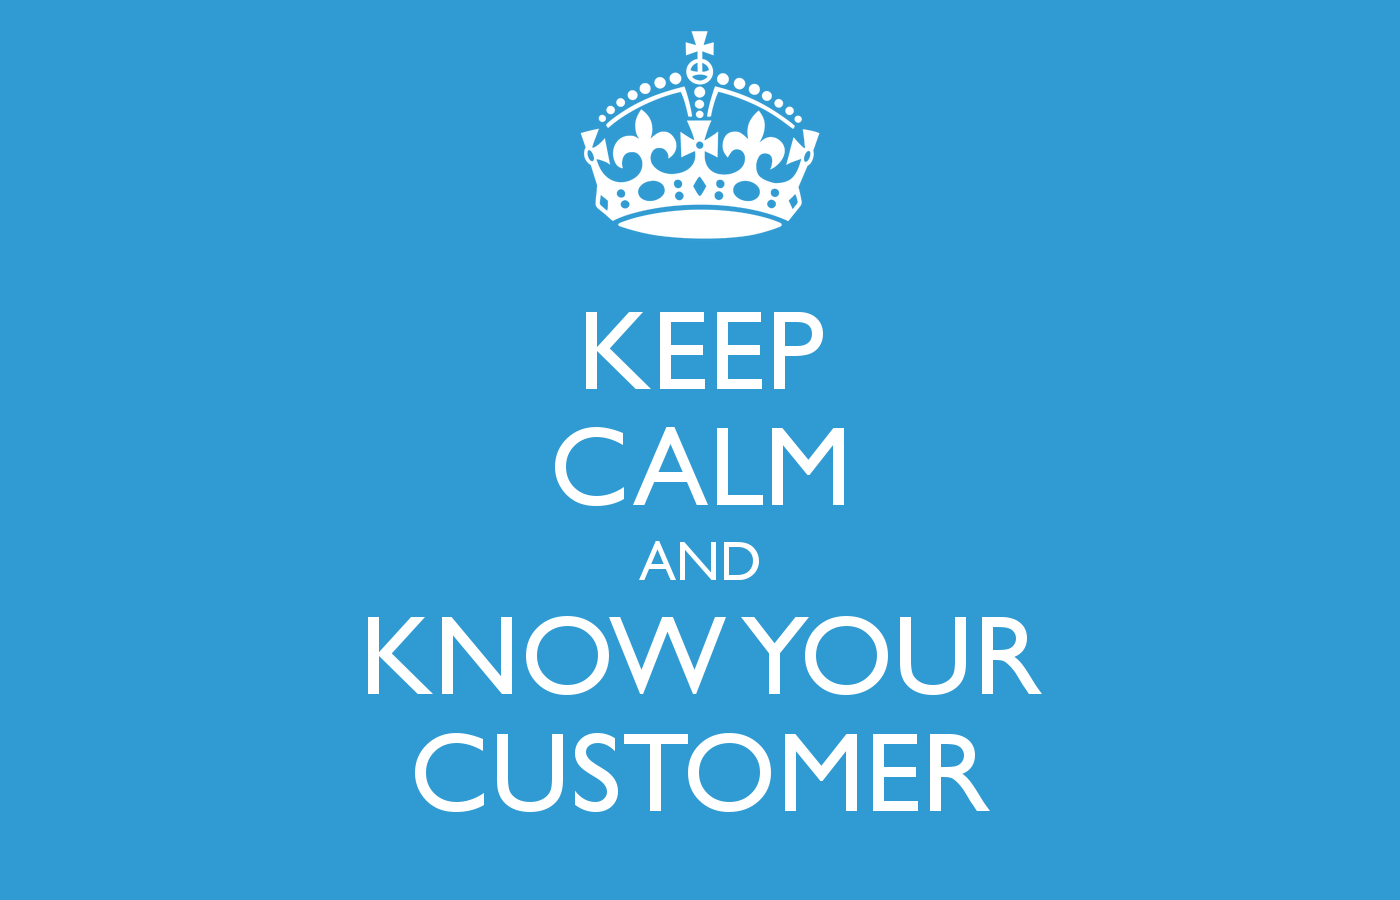 keep calm know customer